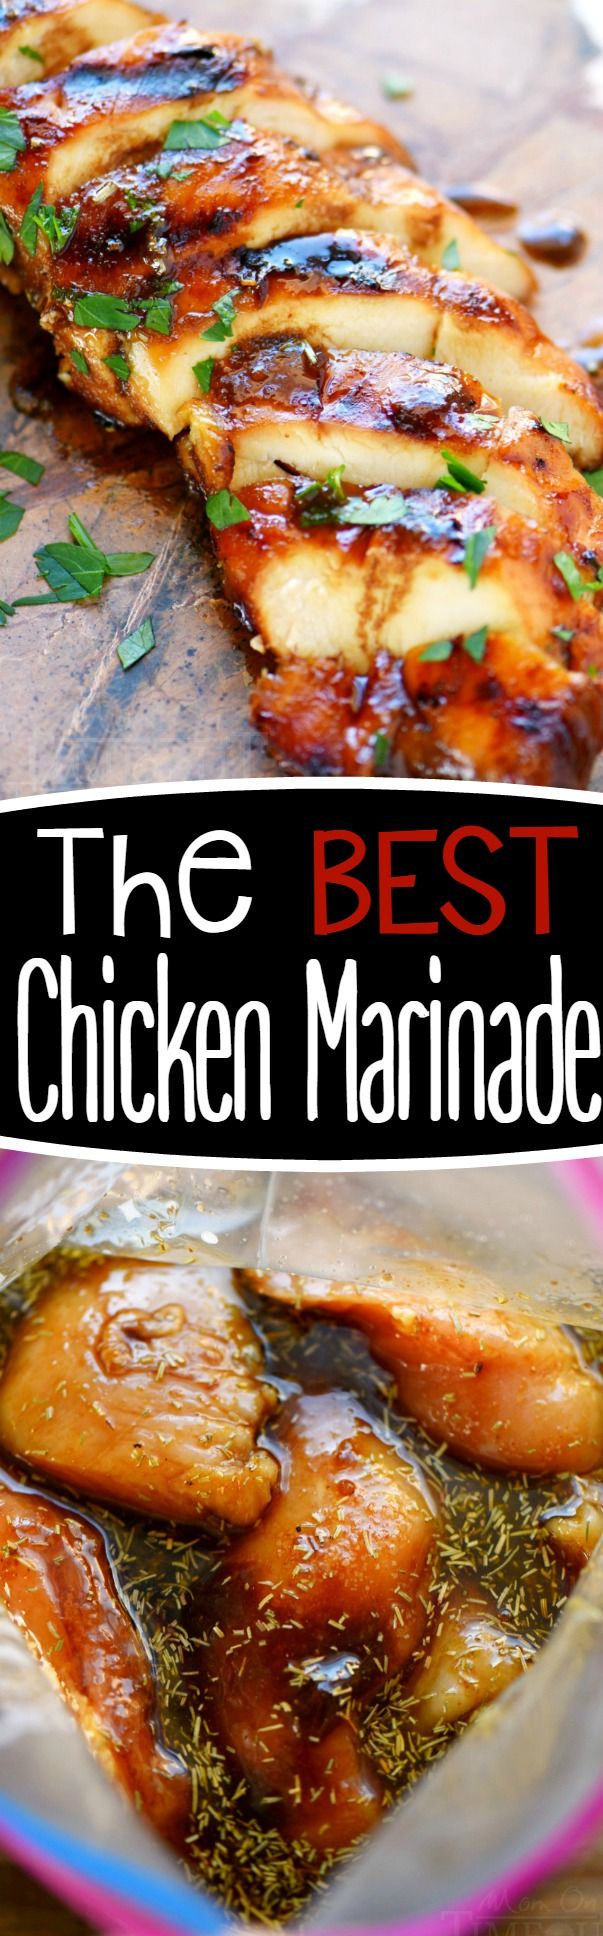 Look no further for the Best Chicken Marinade recipe ever! This easy chicken marinade recipe is going to quickly become your favorite go-to marinade! This marinade produces so much flavor and keeps the chicken incredibly moist and outrageously delicious - try it today!: